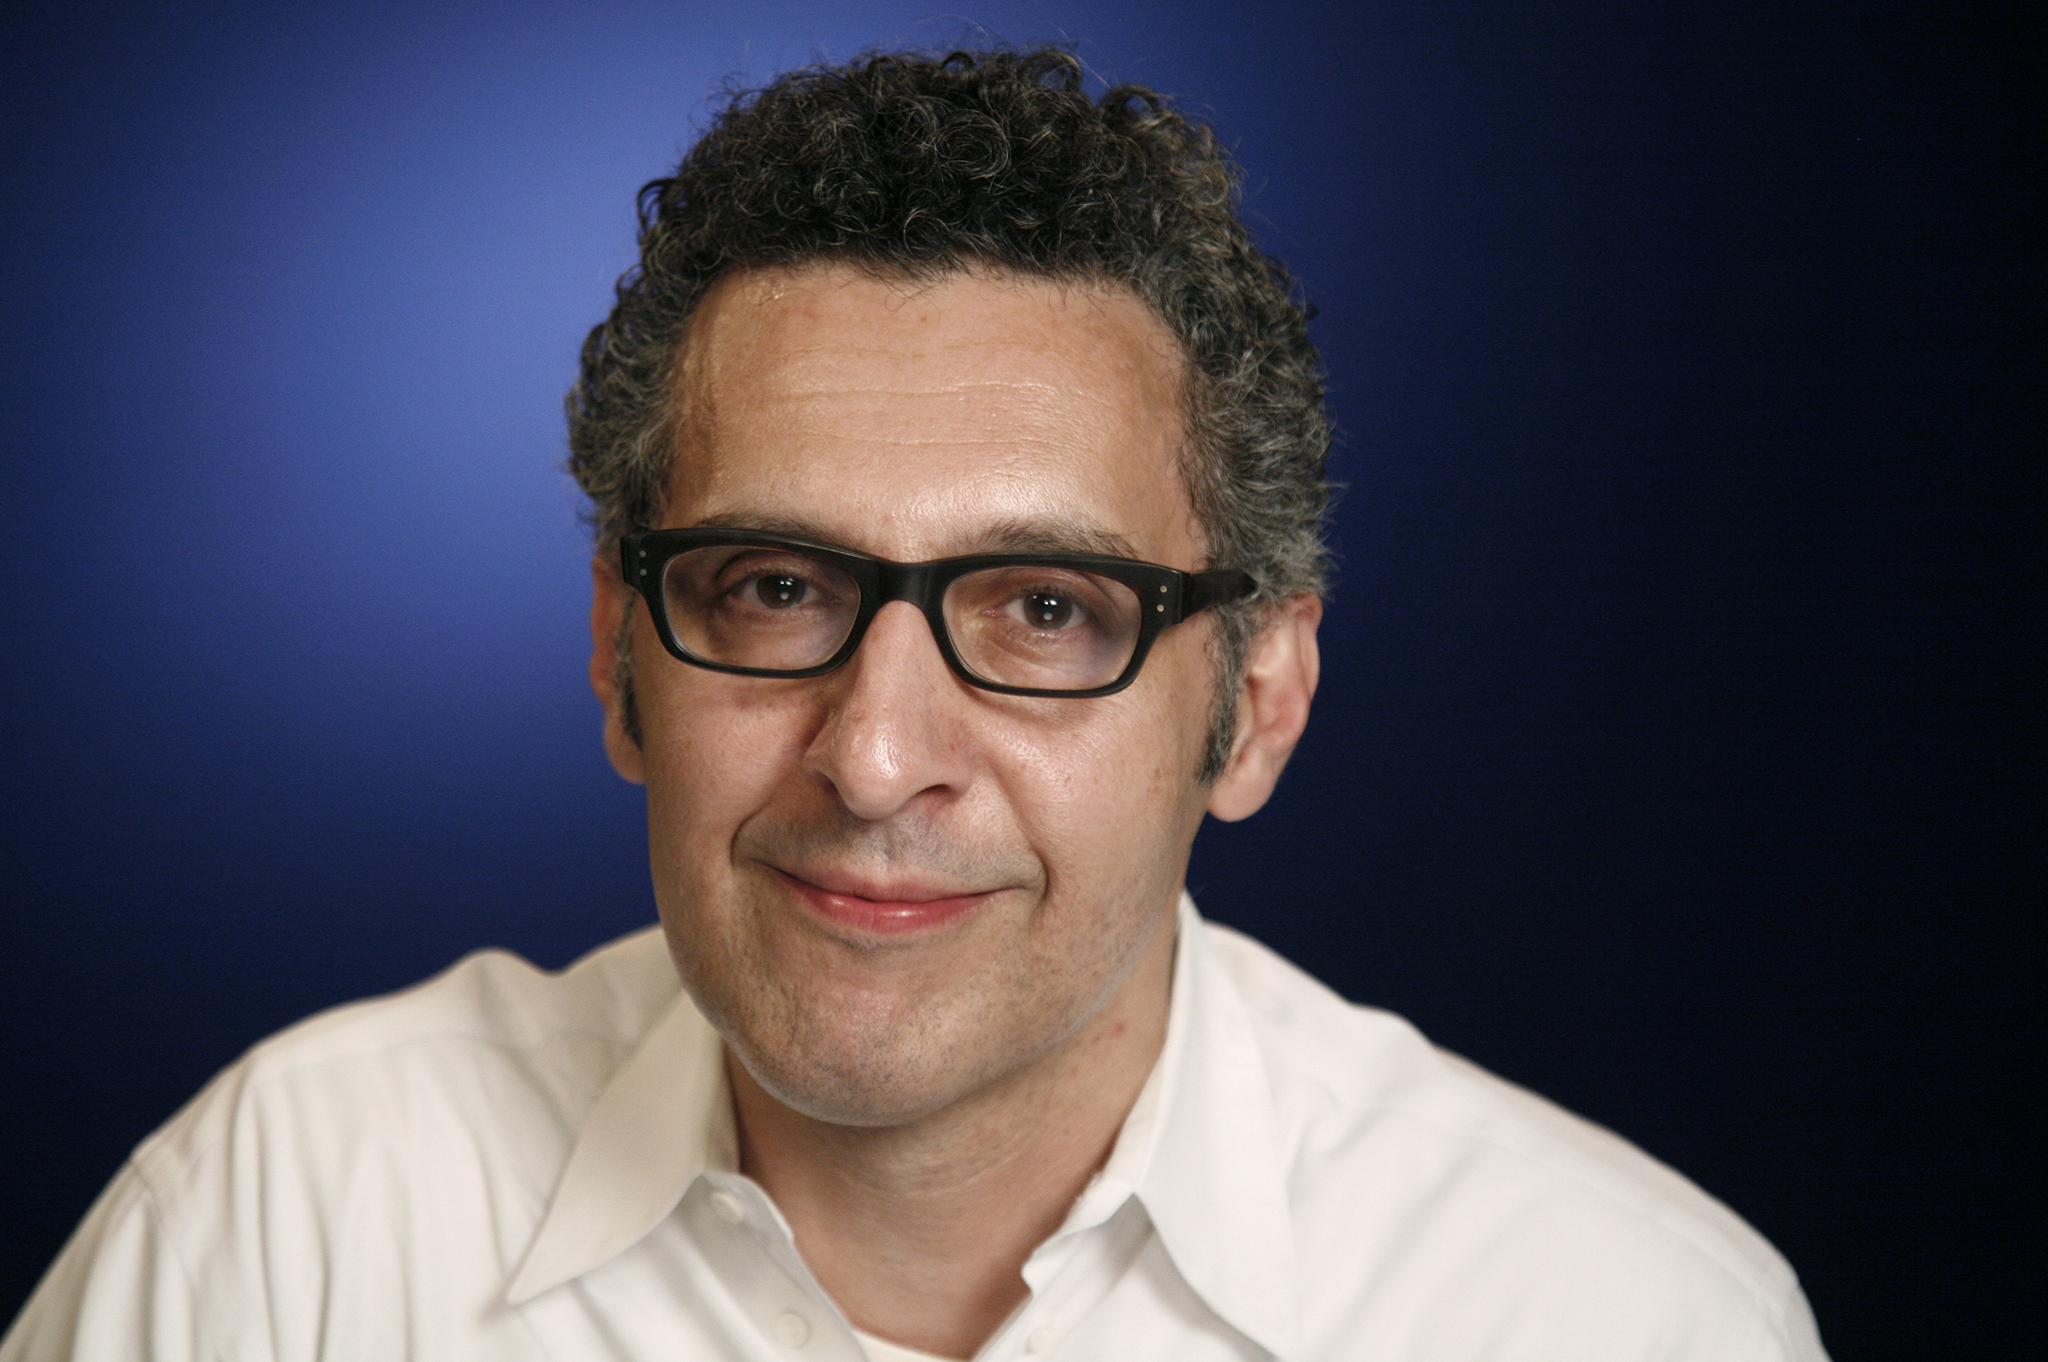 IQOS Innovation Award a John Turturro